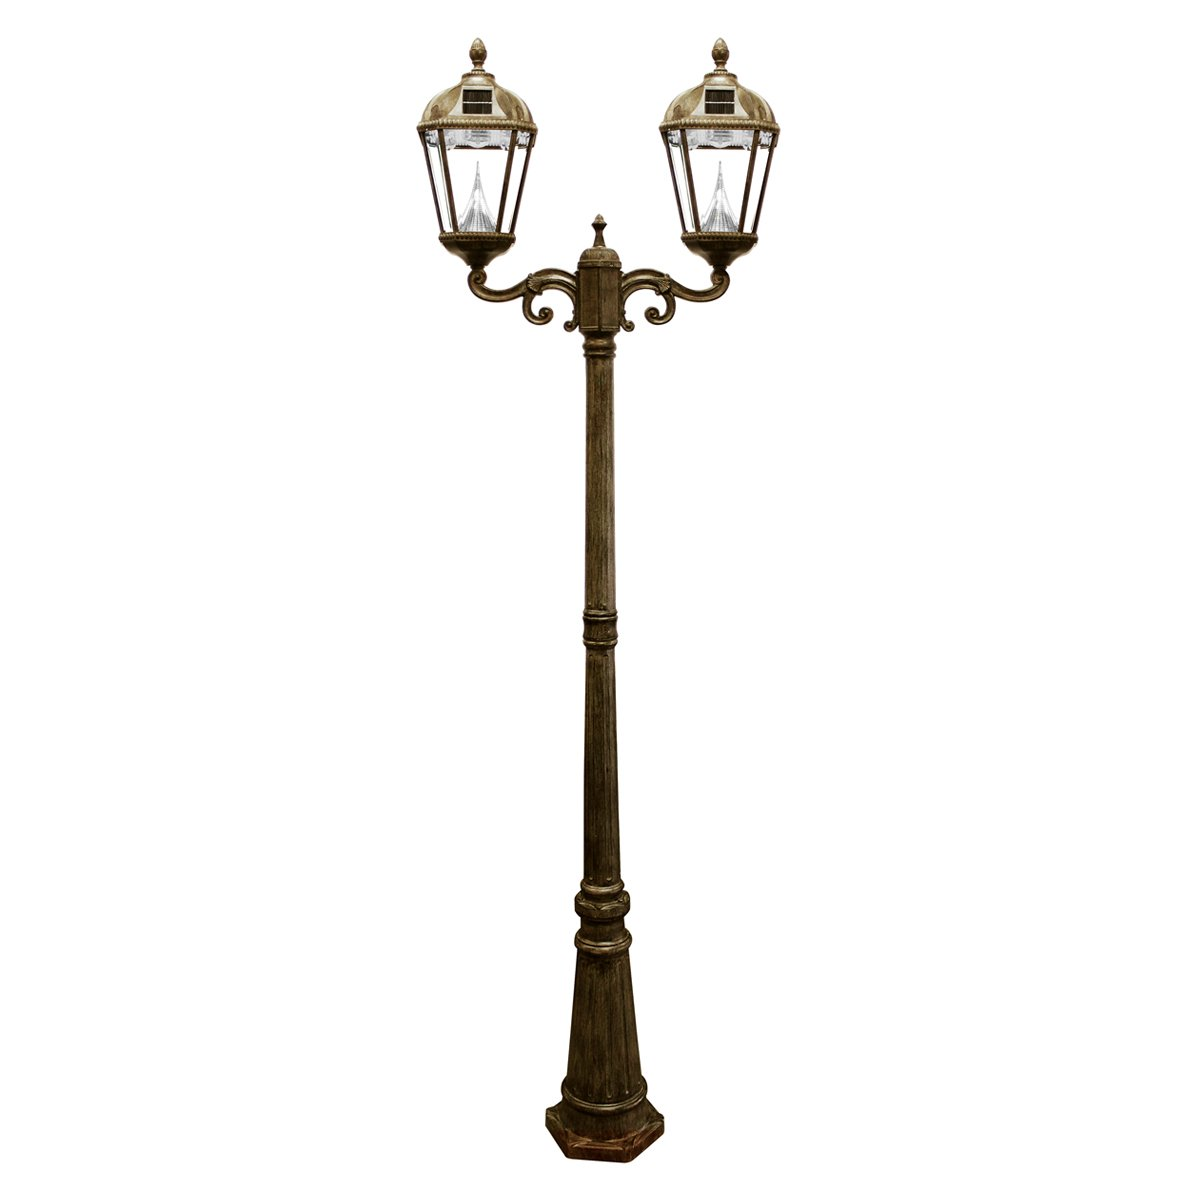 Gama Sonic Royal Solar Lamp Post and Double Lamp LED Light Fixture, 89-Inch Height, Weathered Bronze Finish #GS-98D